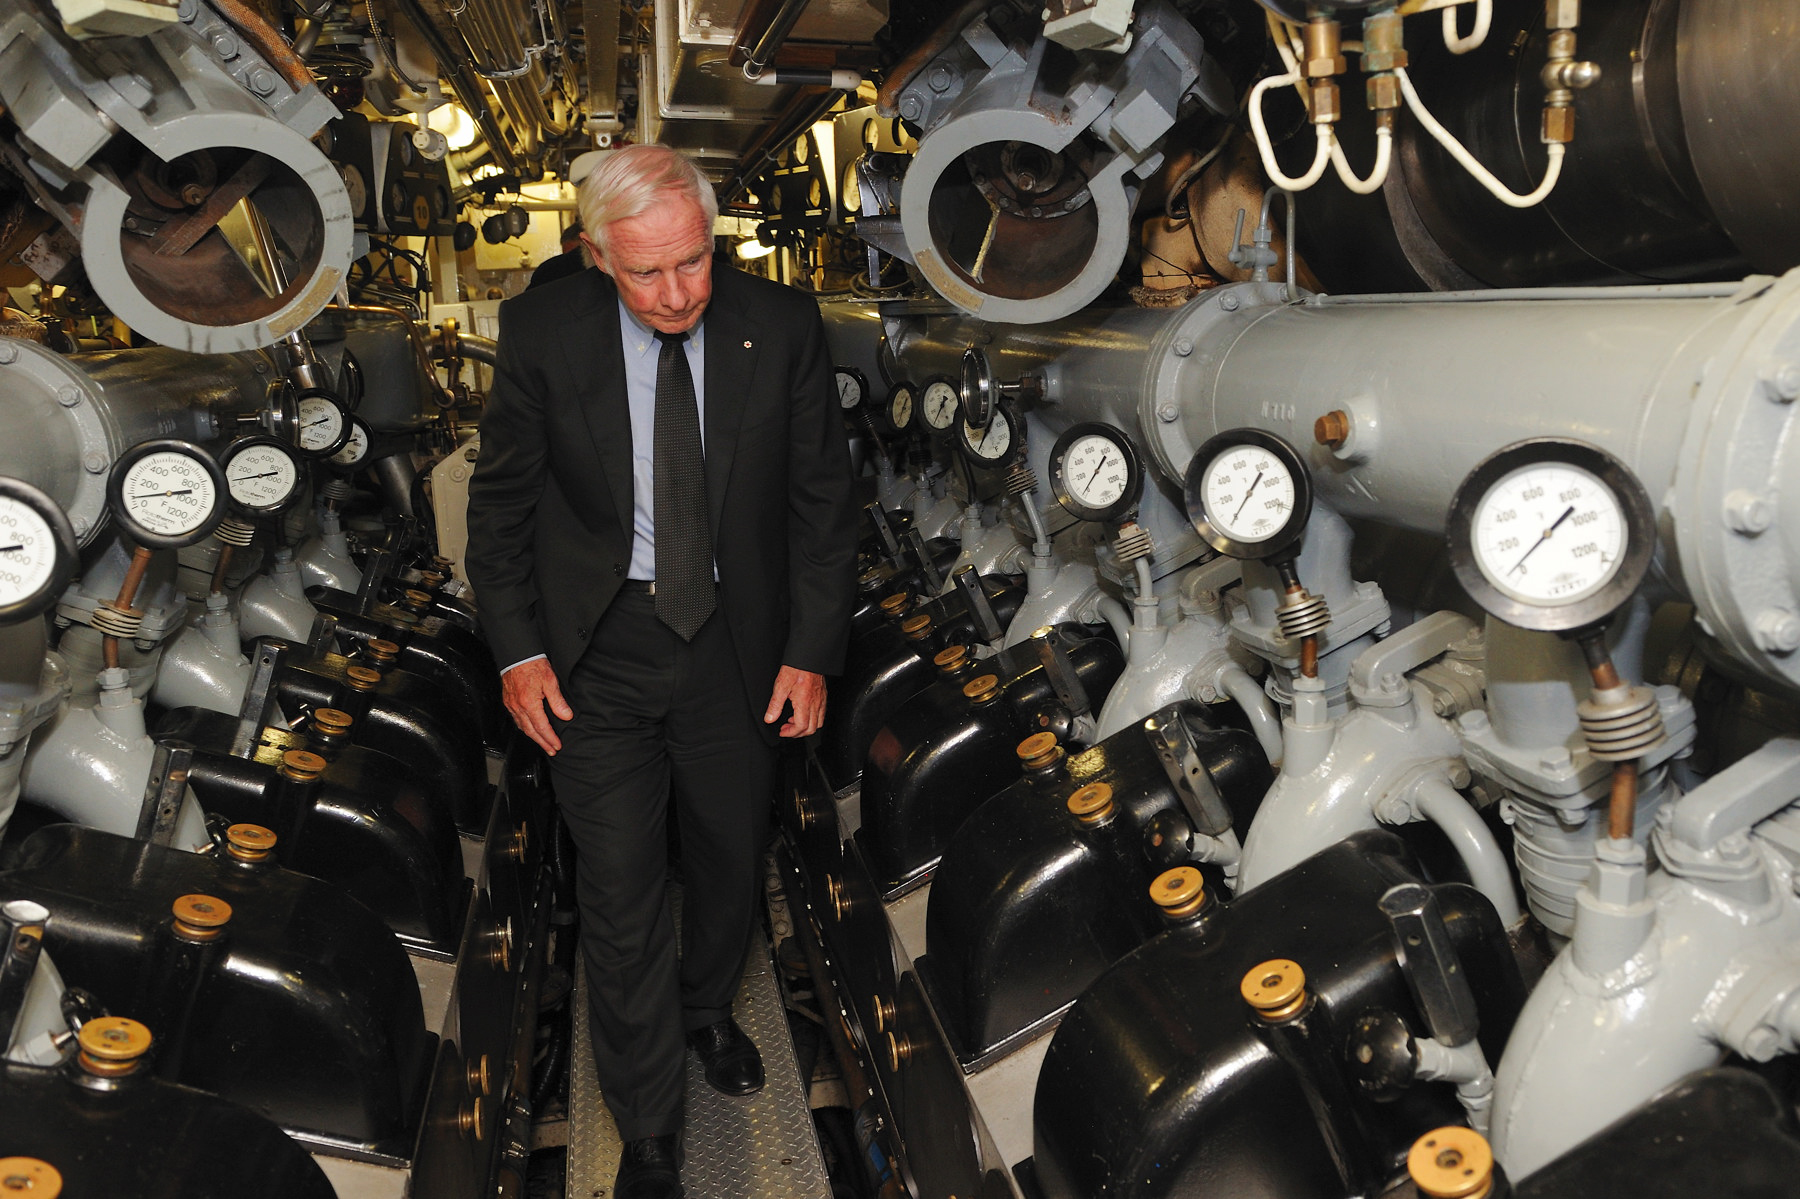 The Governor General took part in a tour of the interior of the impressive Onondaga.